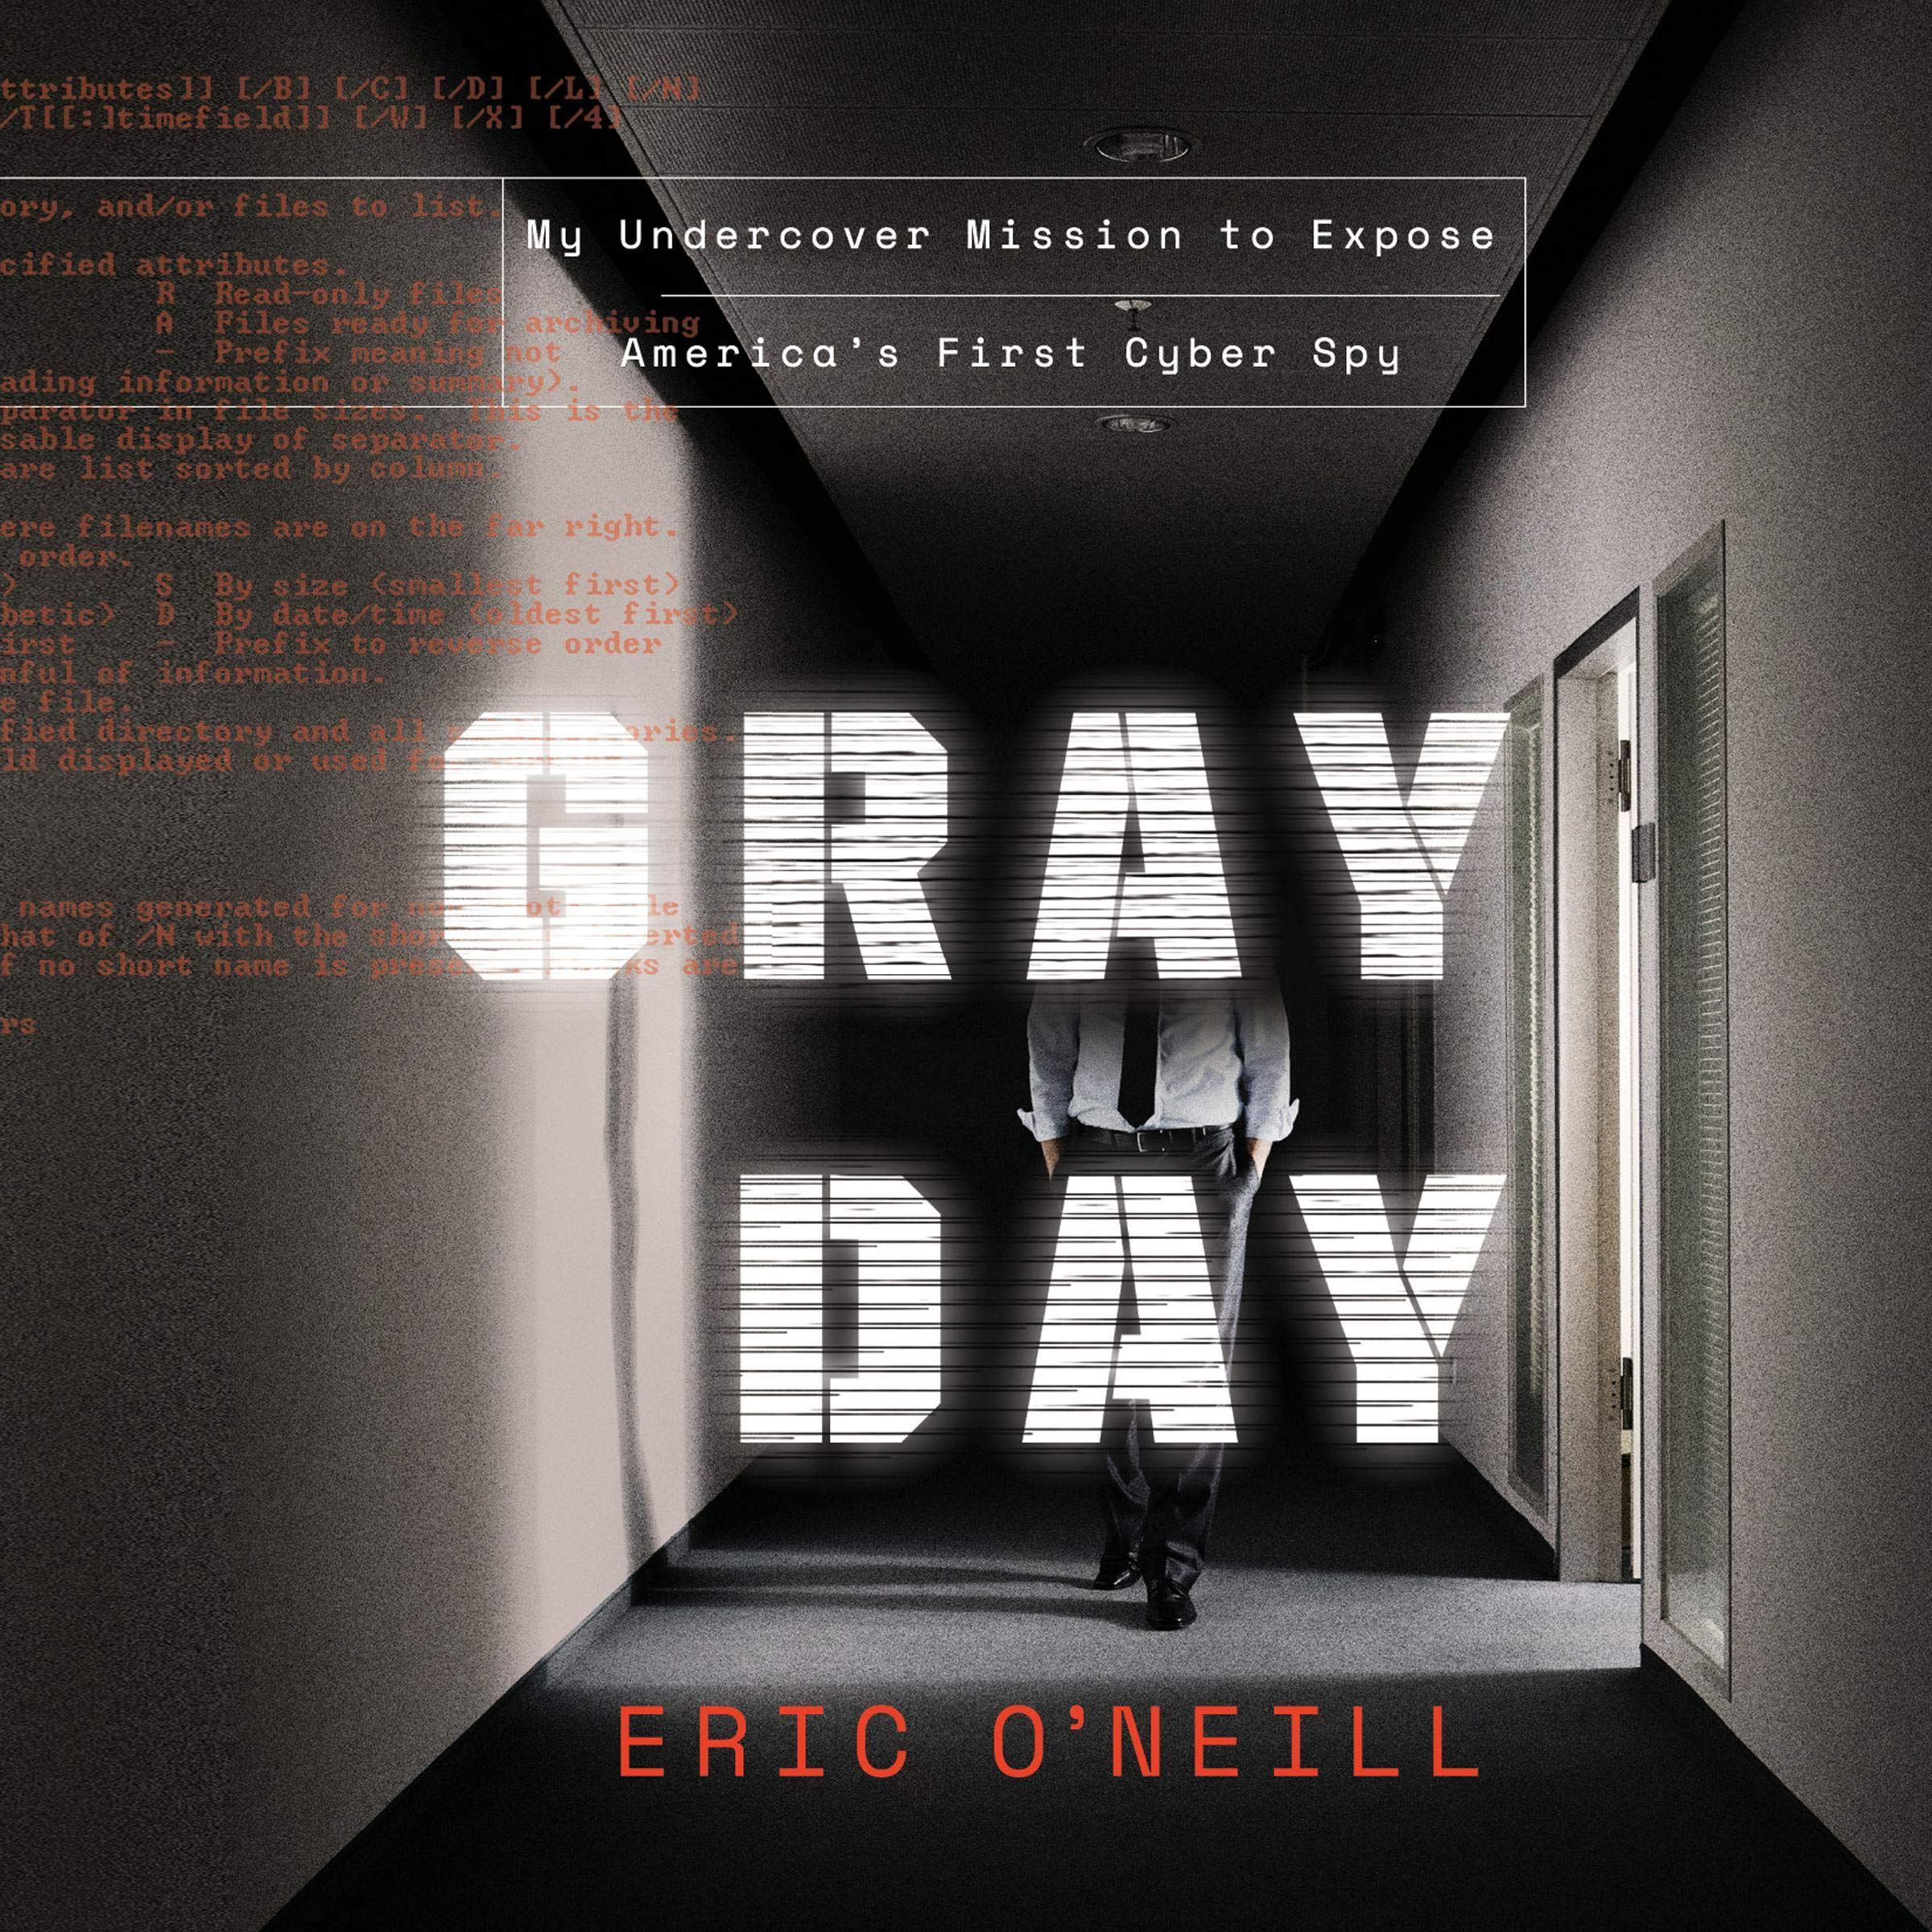 Image OfGray Day: My Undercover Mission To Expose America's First Cyber Spy